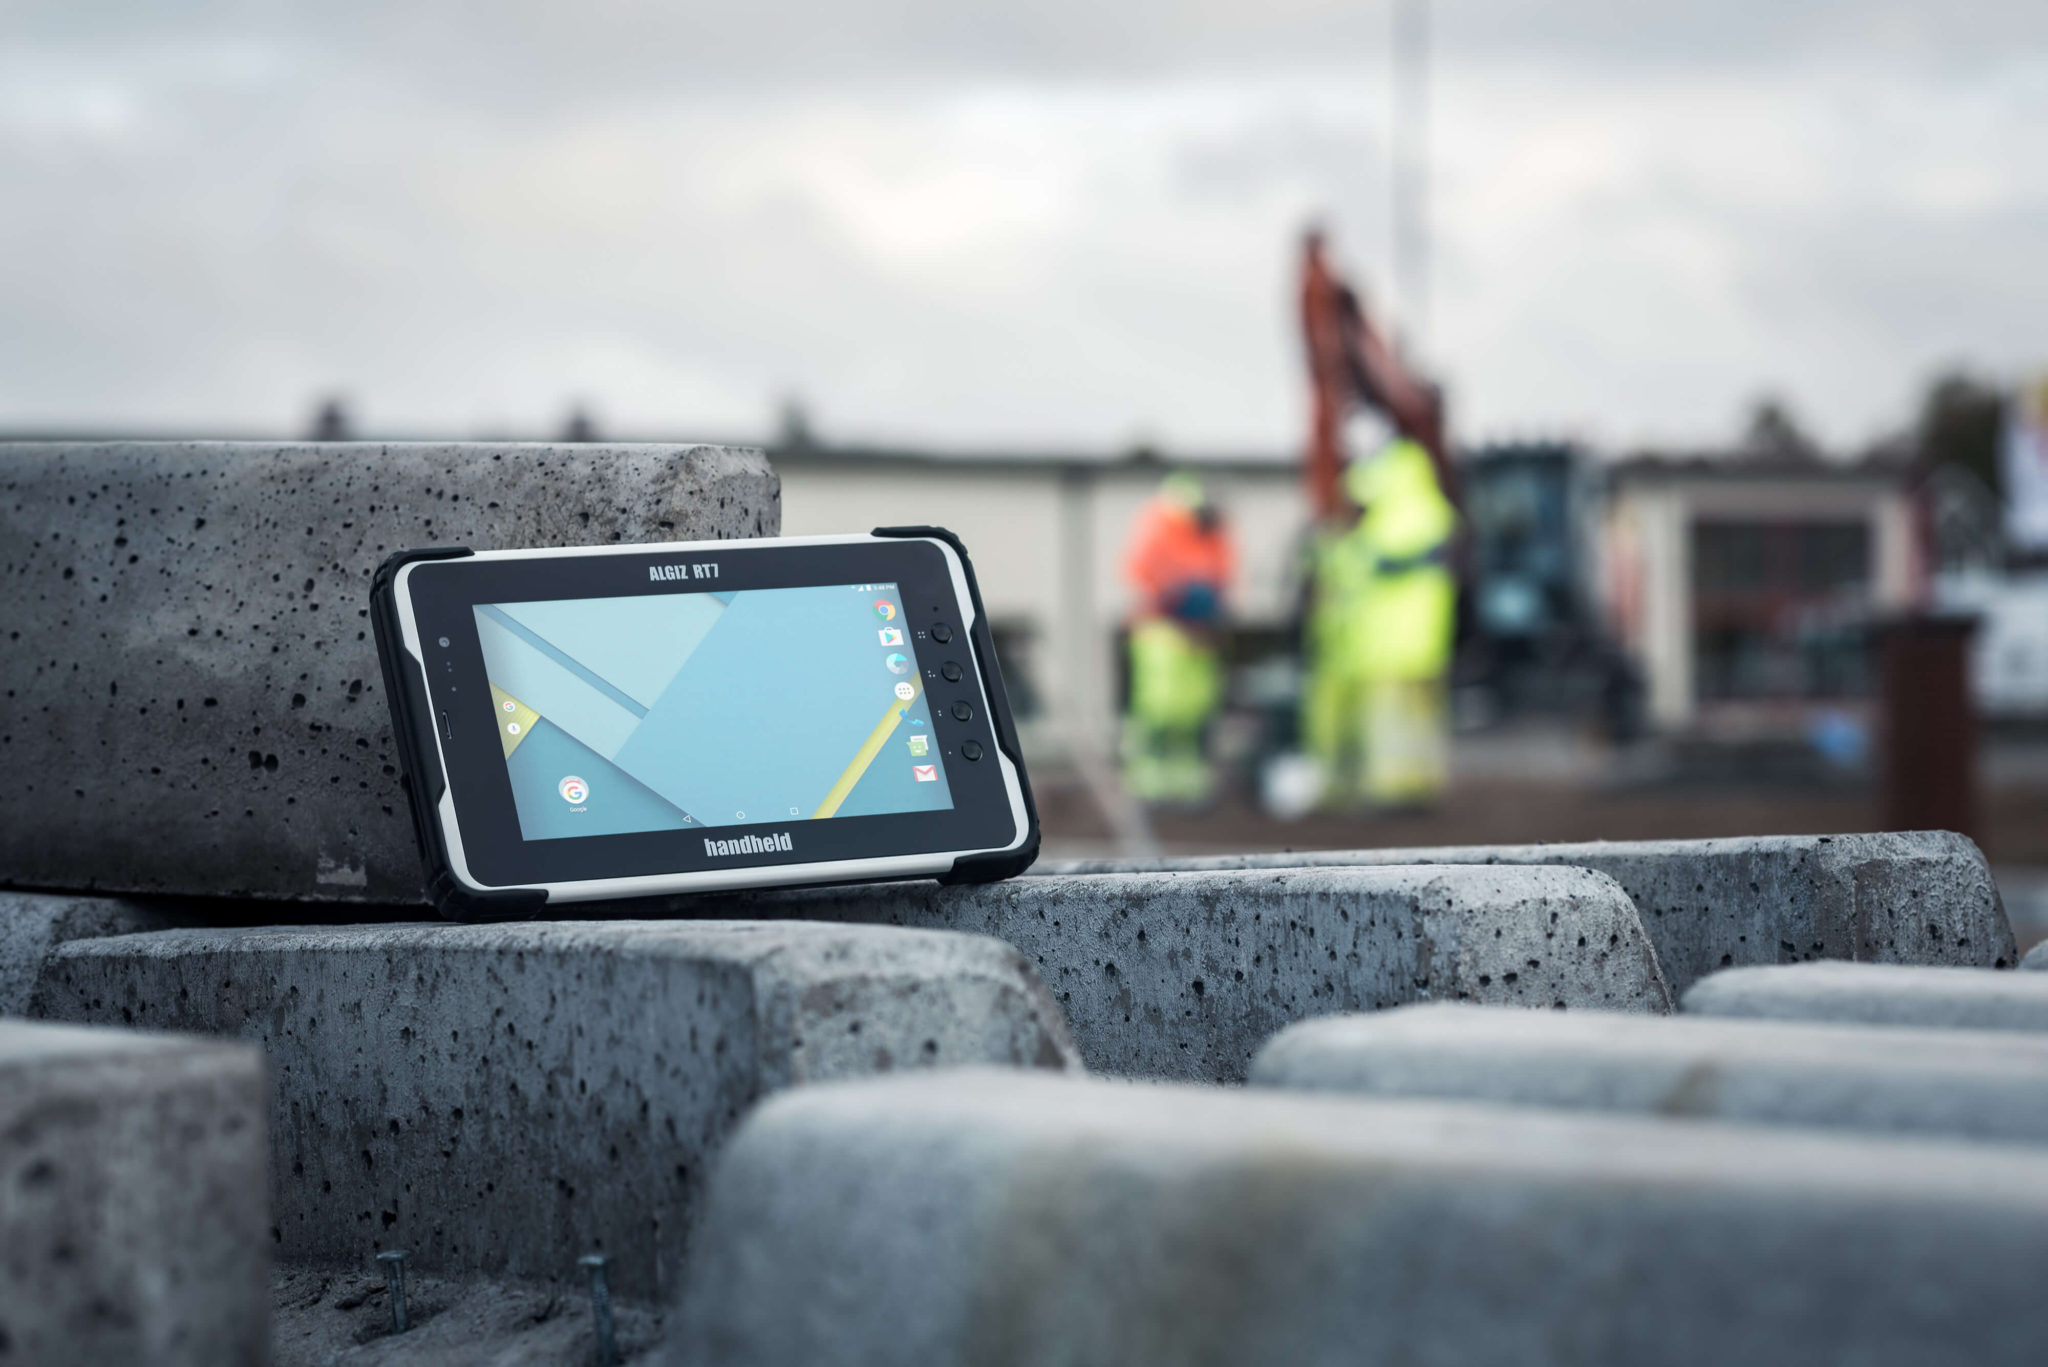 ALGIZ-RT7-rugged-tablet-Android-jobsite-construction-Android-6